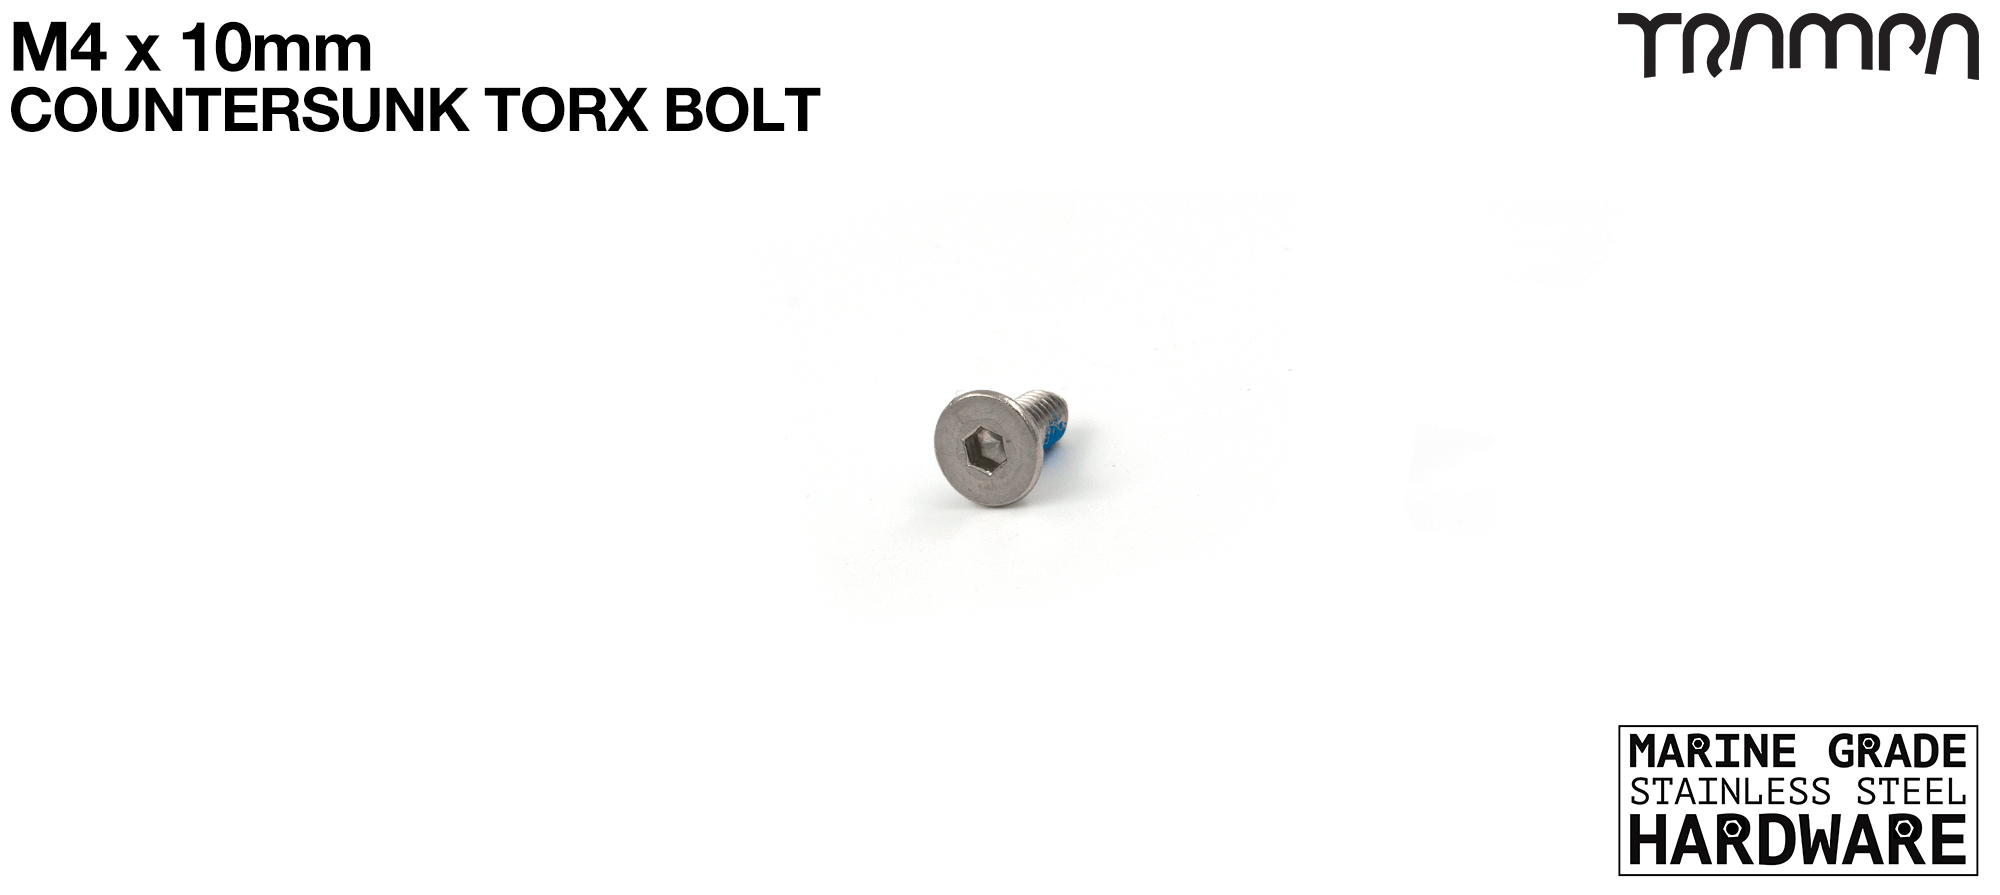 M4 x 10mm Countersunk Head Bolt DIN6912 Marine Grade Stainless Steel #24